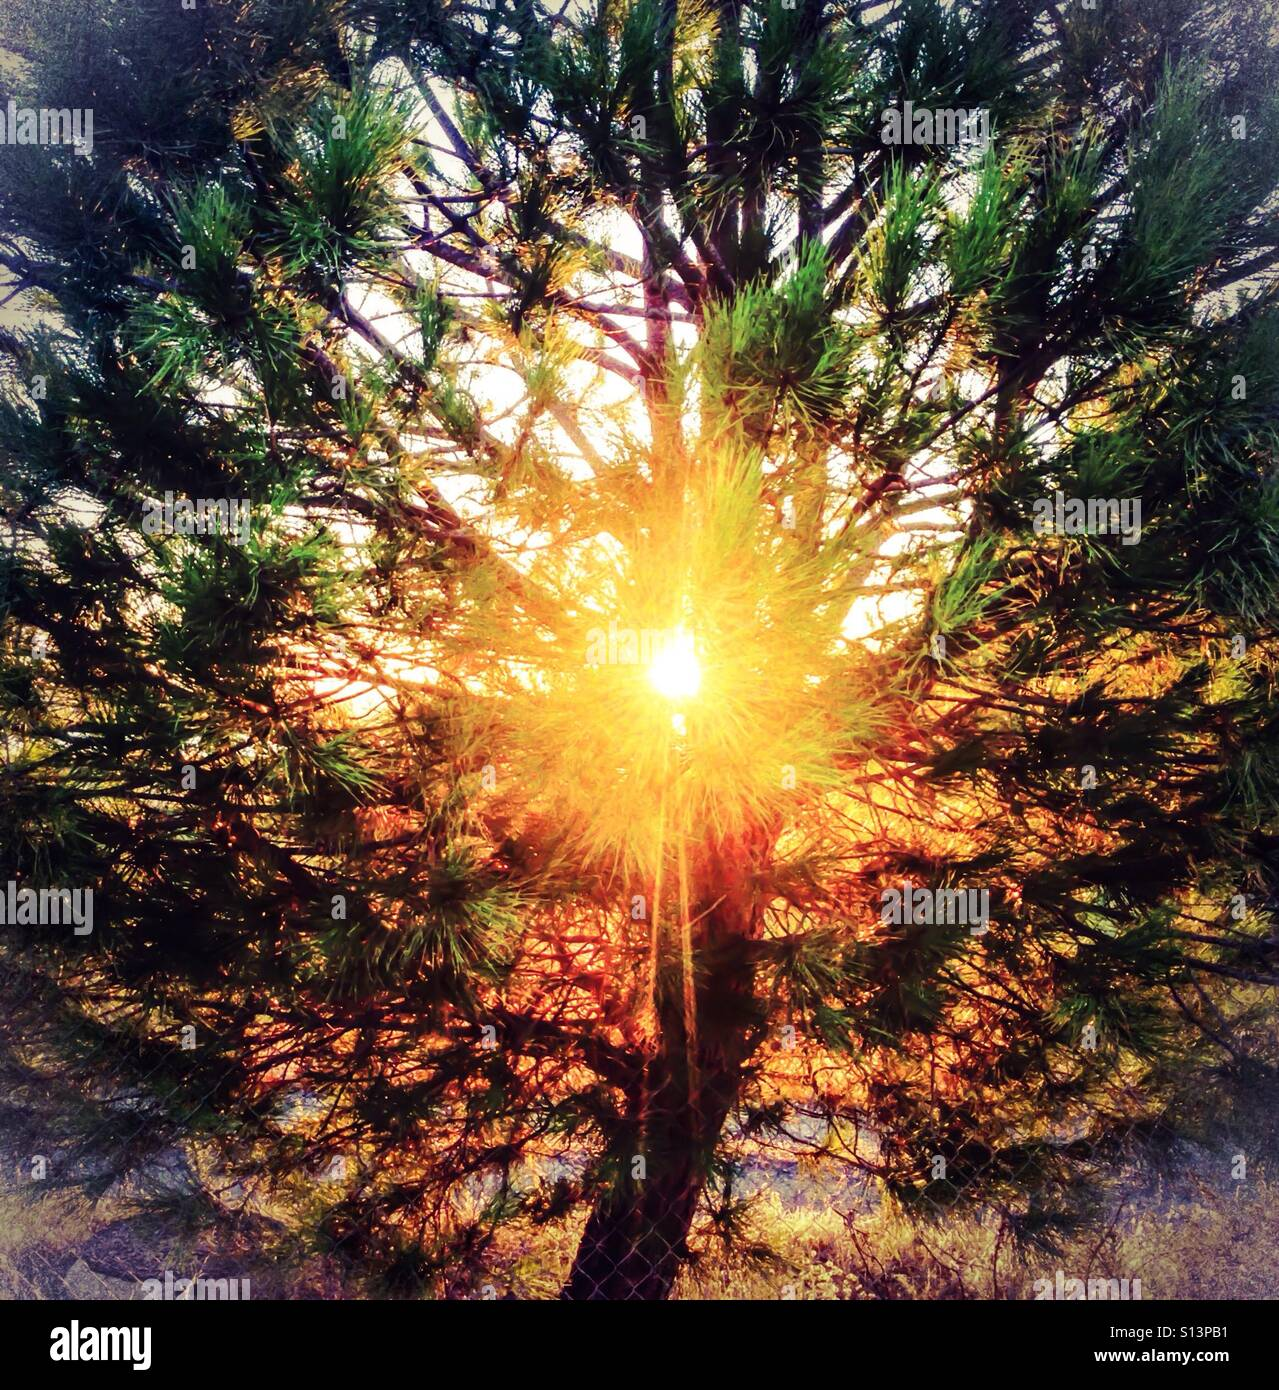 Sunlight and rays near to sunset through a pine tree. There is a spiritual, guiding light, uplifting feel to the - Stock Image